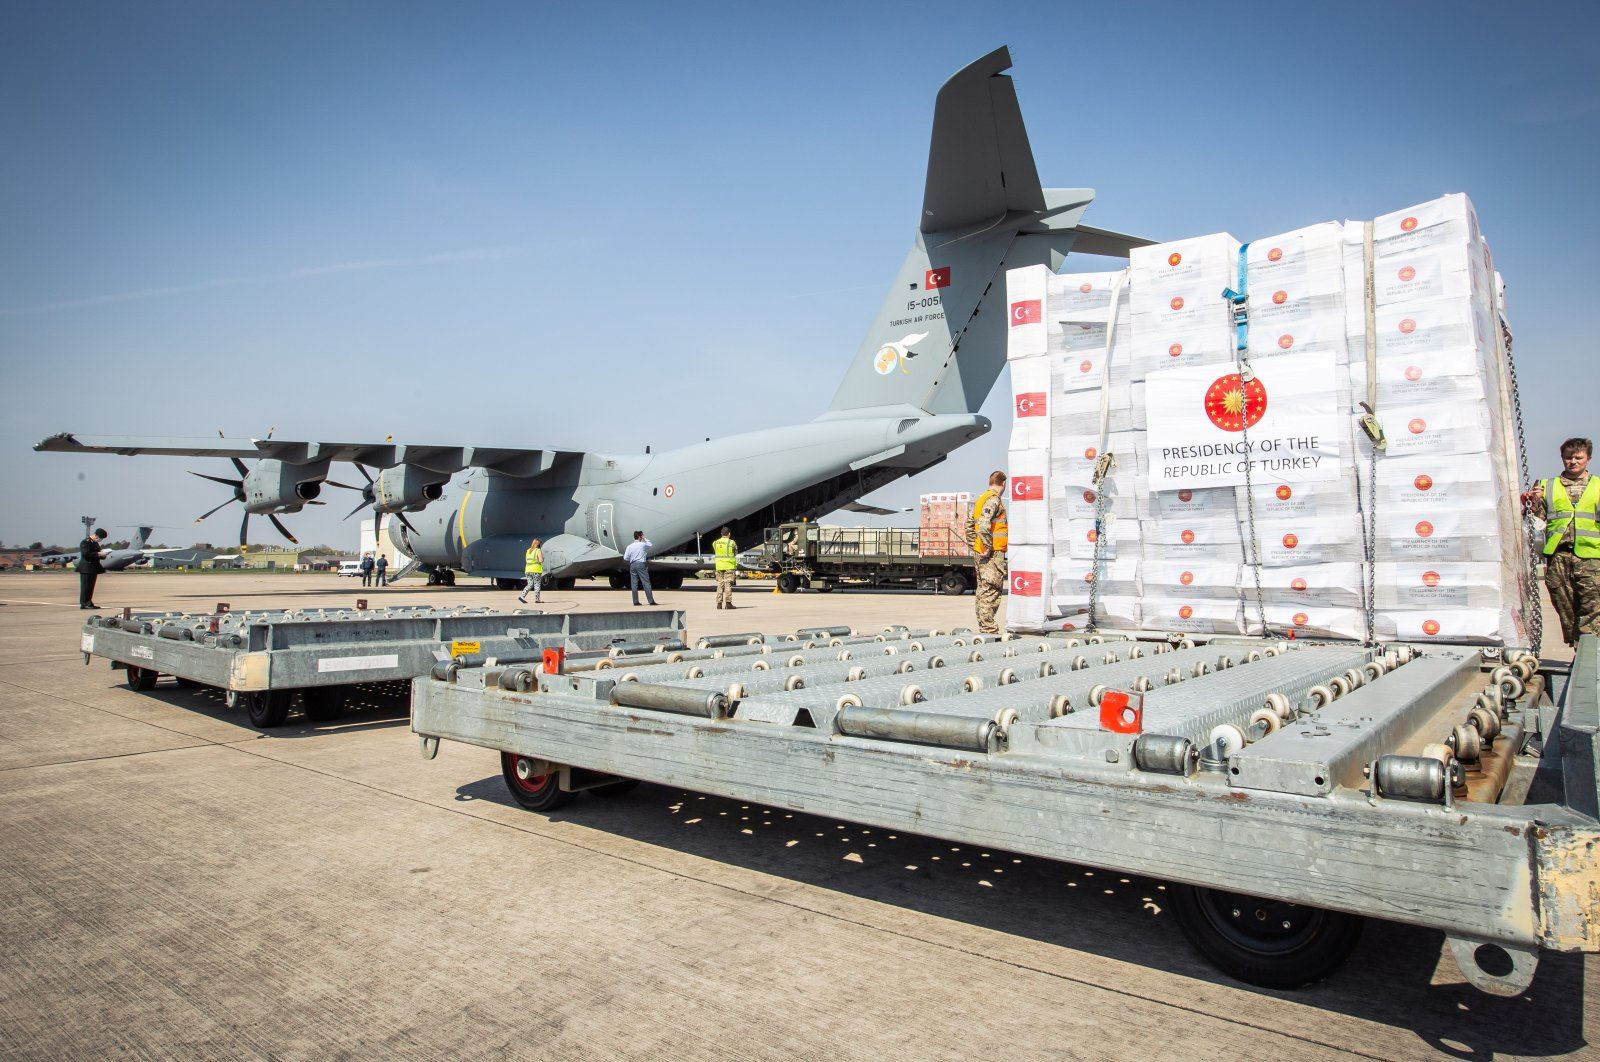 Crucial supplies of personal protective equipment (PPE) for medical staff are delivered from Turkey into a Royal Air Force base for distribution around the country, amid the coronavirus outbreak, in Carterton, Britain, April 10, 2020. (Reuters Photo)